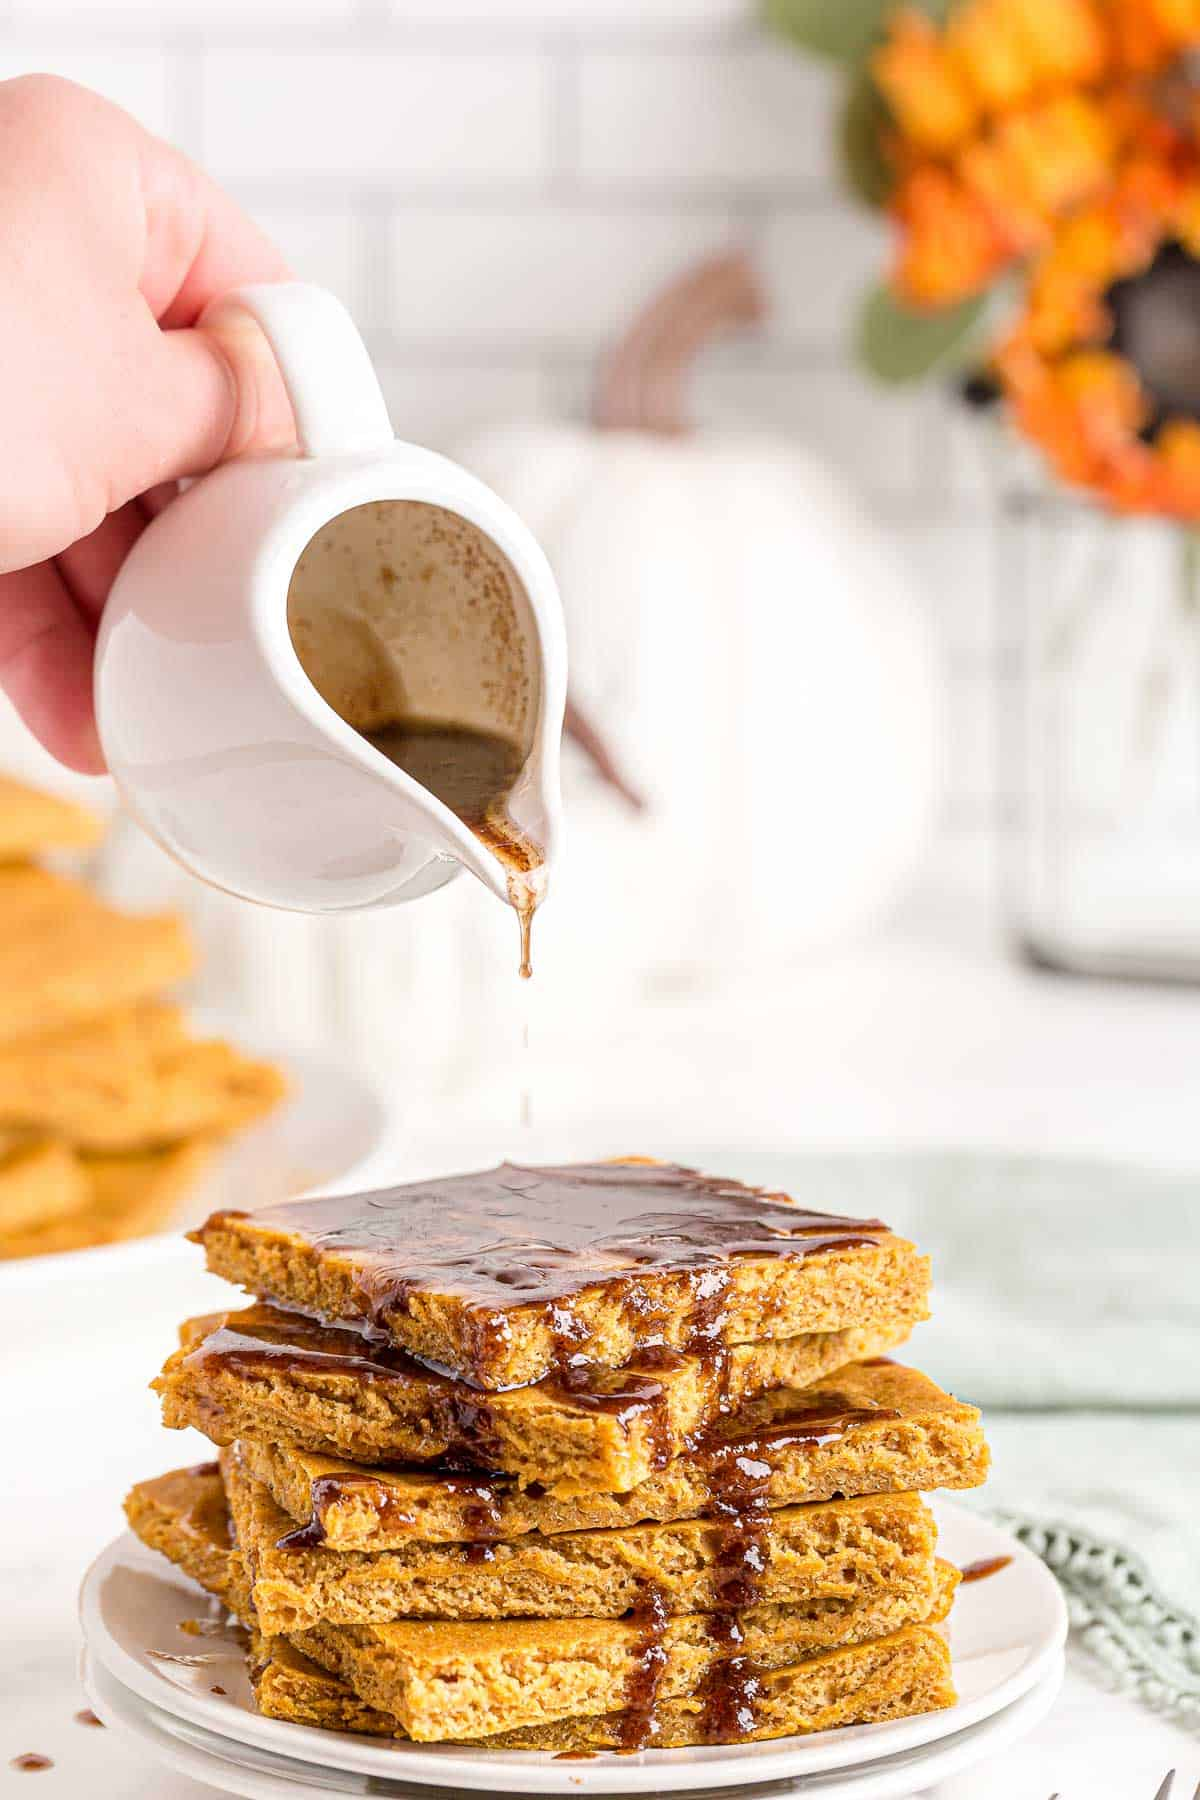 Stack of pumpkin sheet pan pancake slices, being topped with cinnamon butter drizzle.